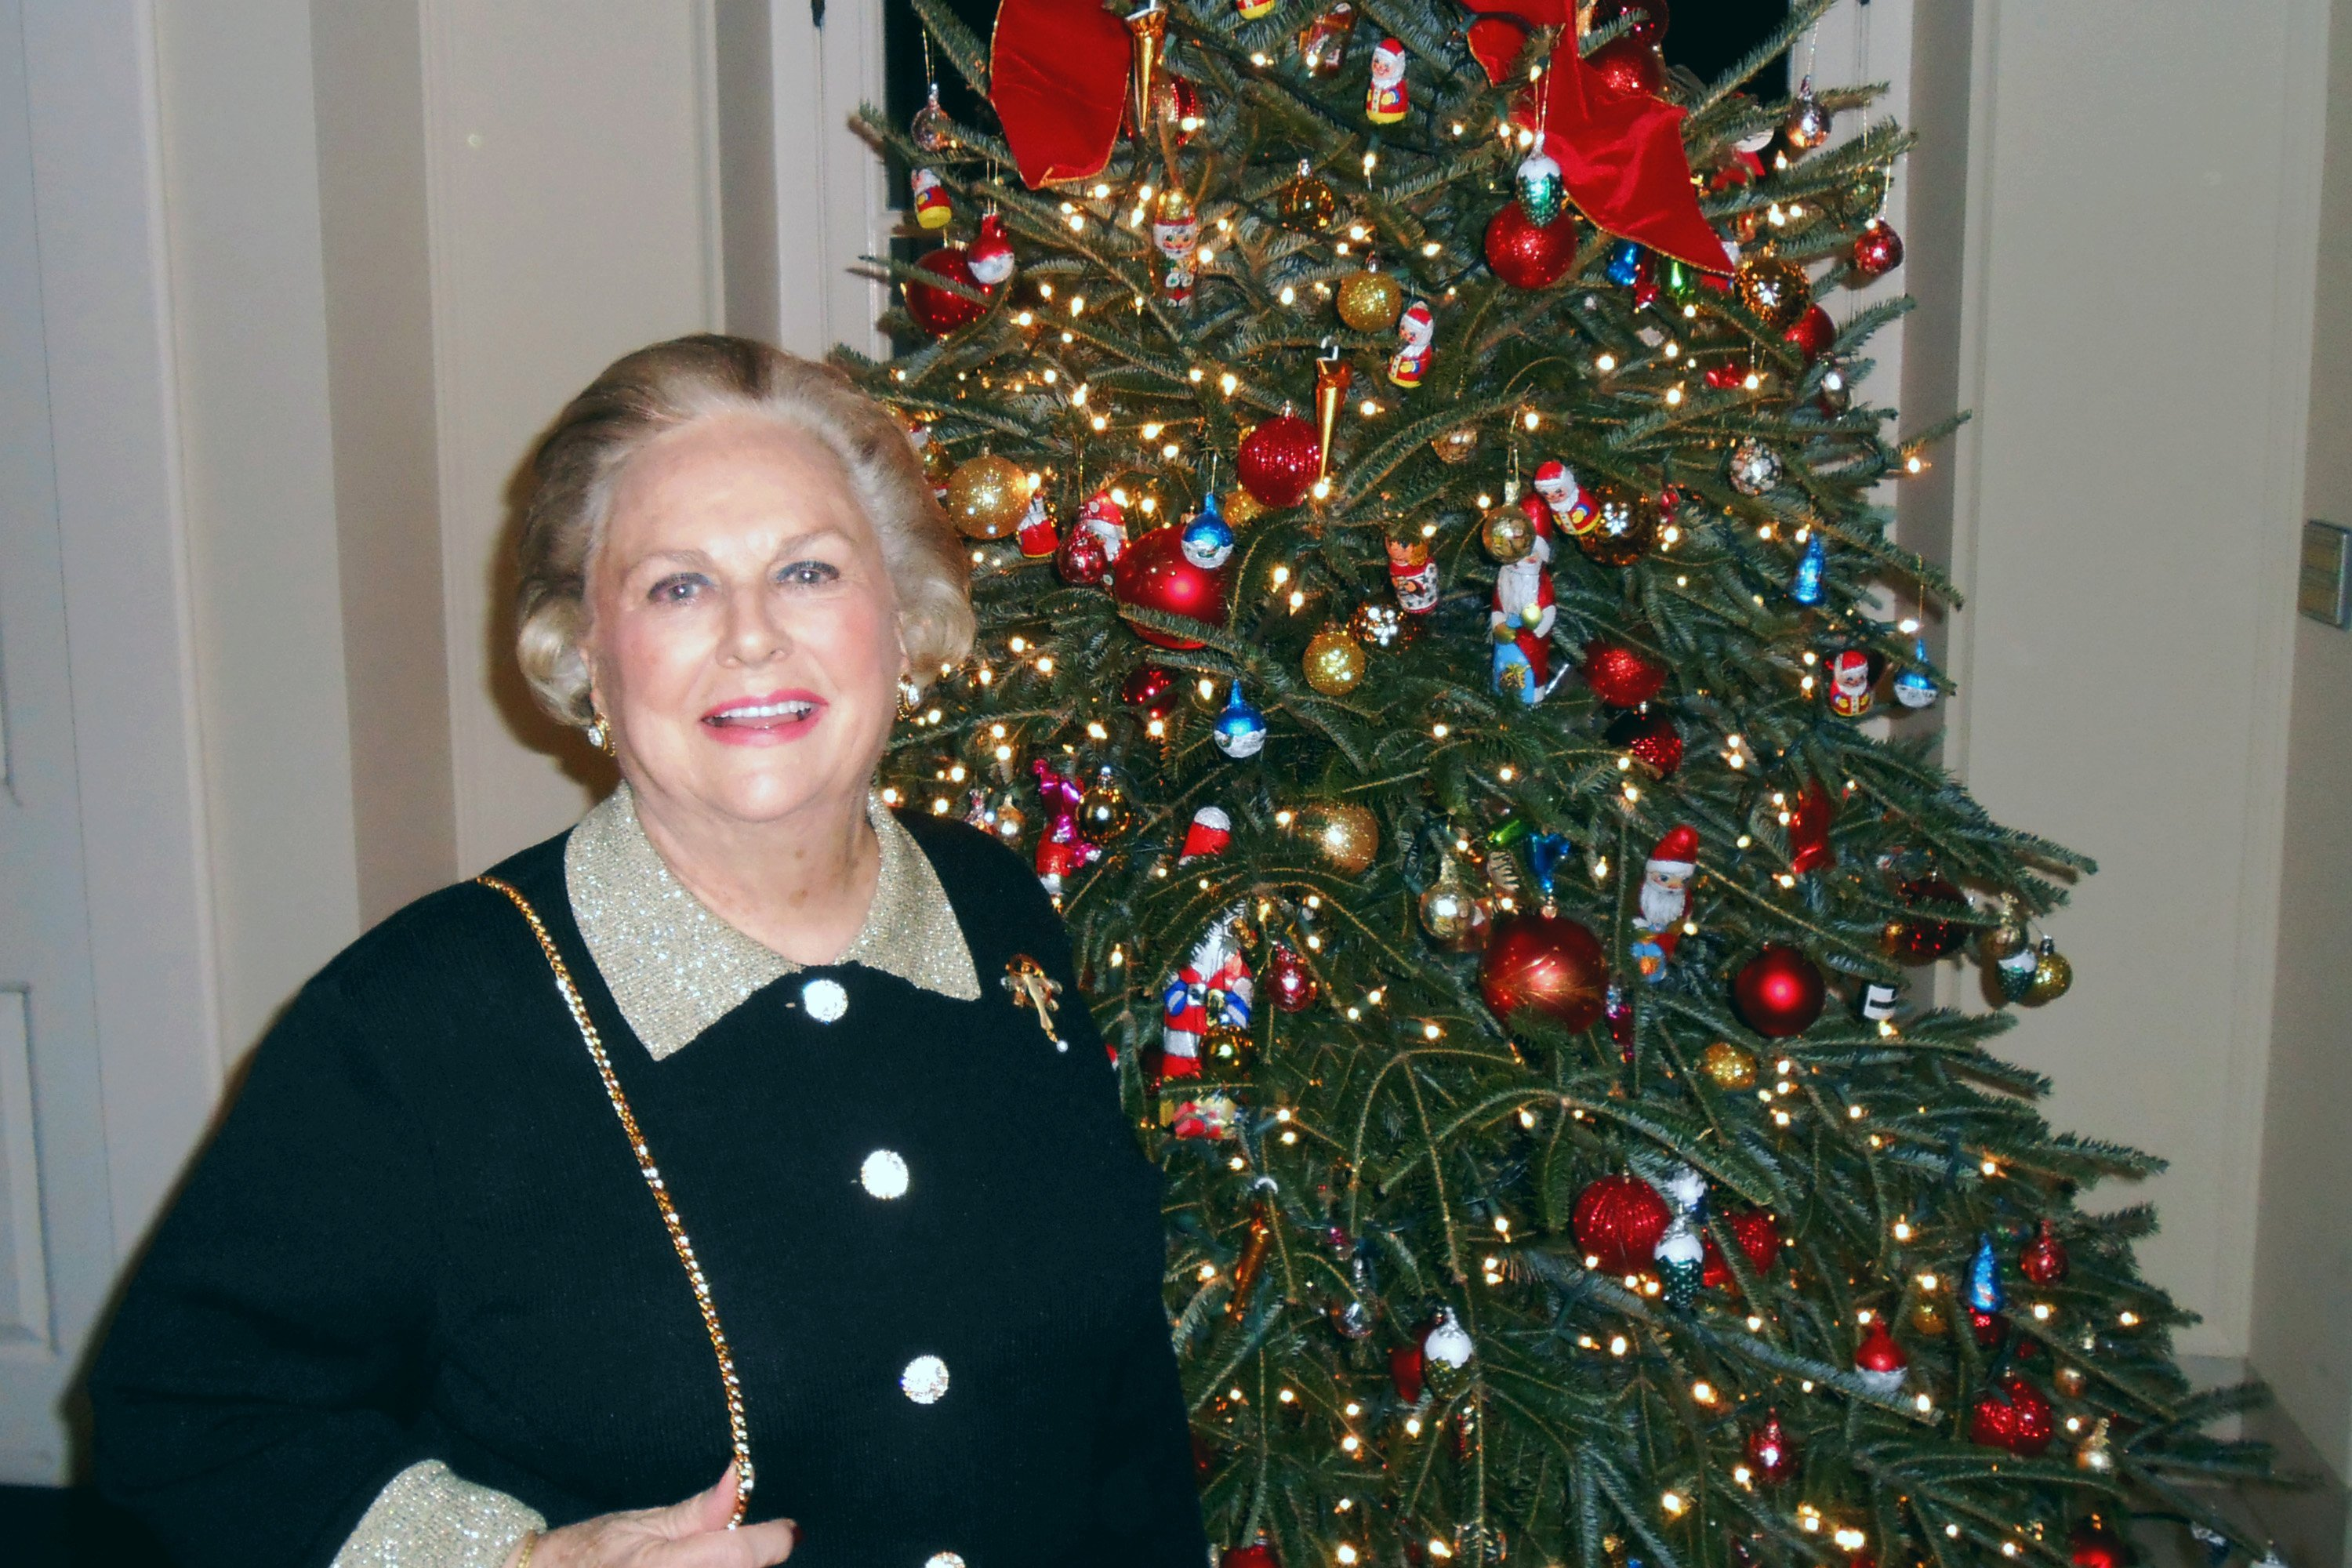 Jacqueline Badger Mars stands by the tree during a cast party held at British Ambassador Peter Westmacott's home in Washington, D.C. on Dec. 13, 2012 | Photo: GettyImages